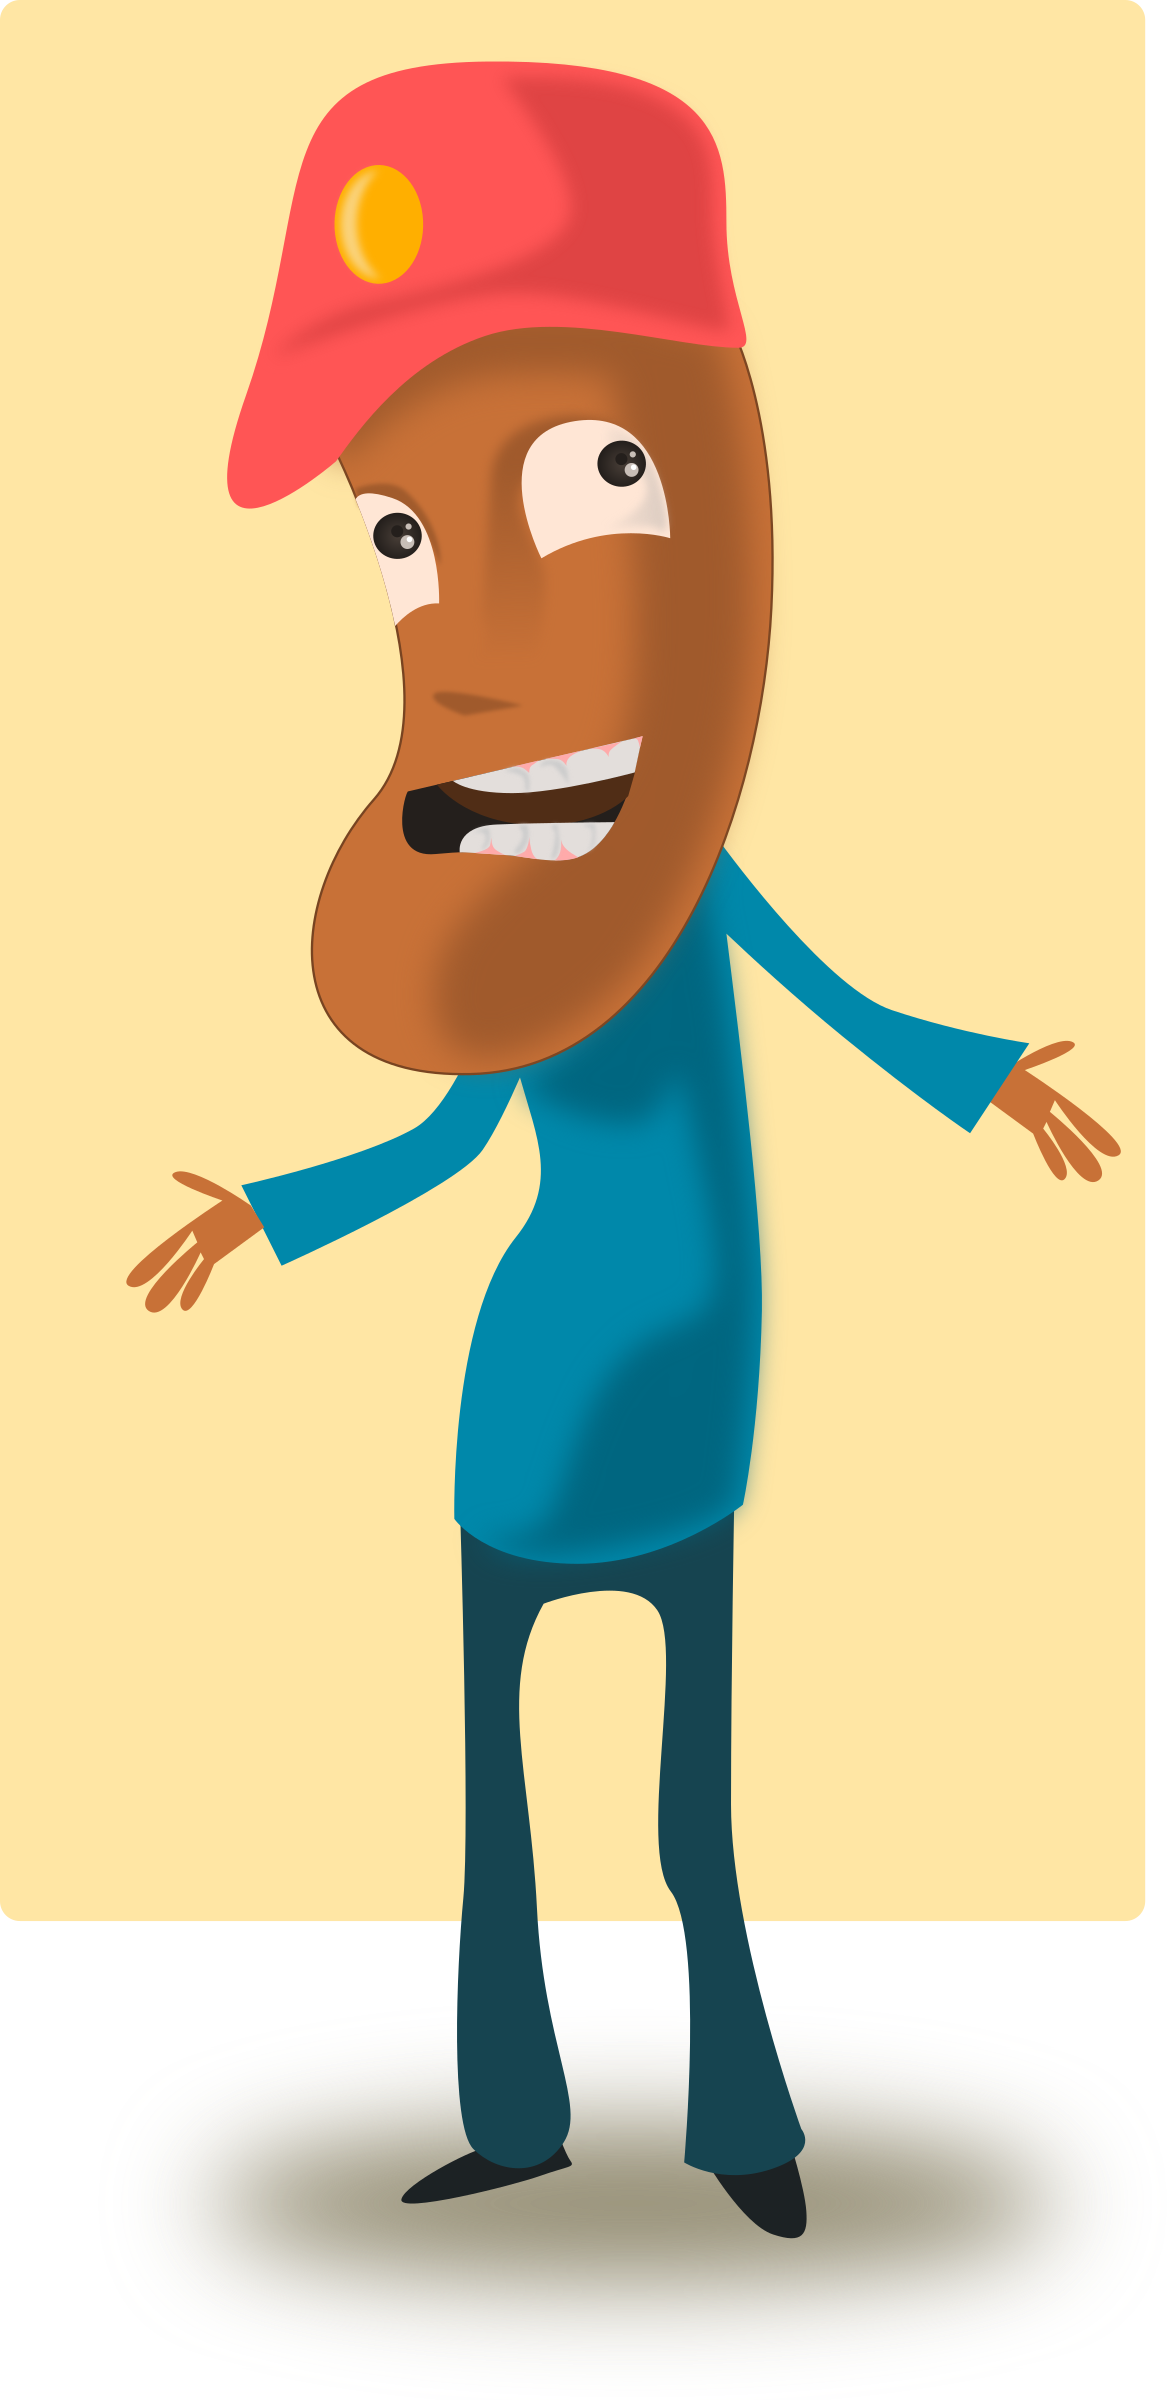 Cartoon Toffee Guy by kablam